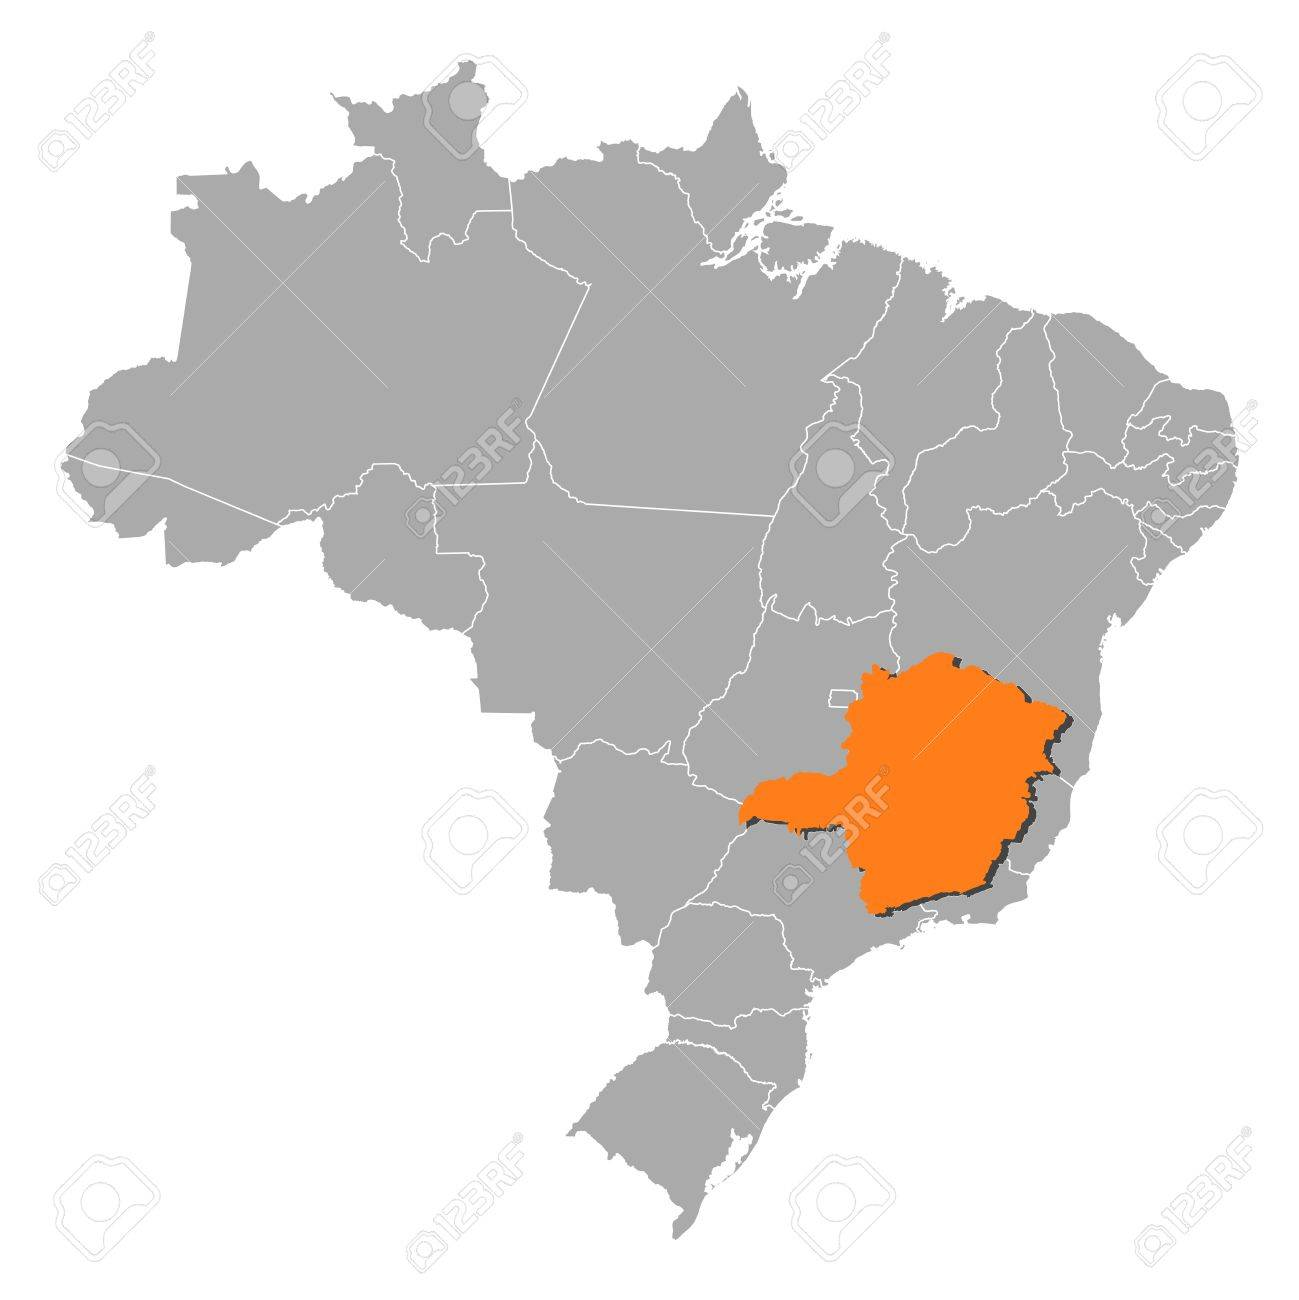 Political map of brazil with the several states where minas gerais political map of brazil with the several states where minas gerais is highlighted stock vector gumiabroncs Gallery